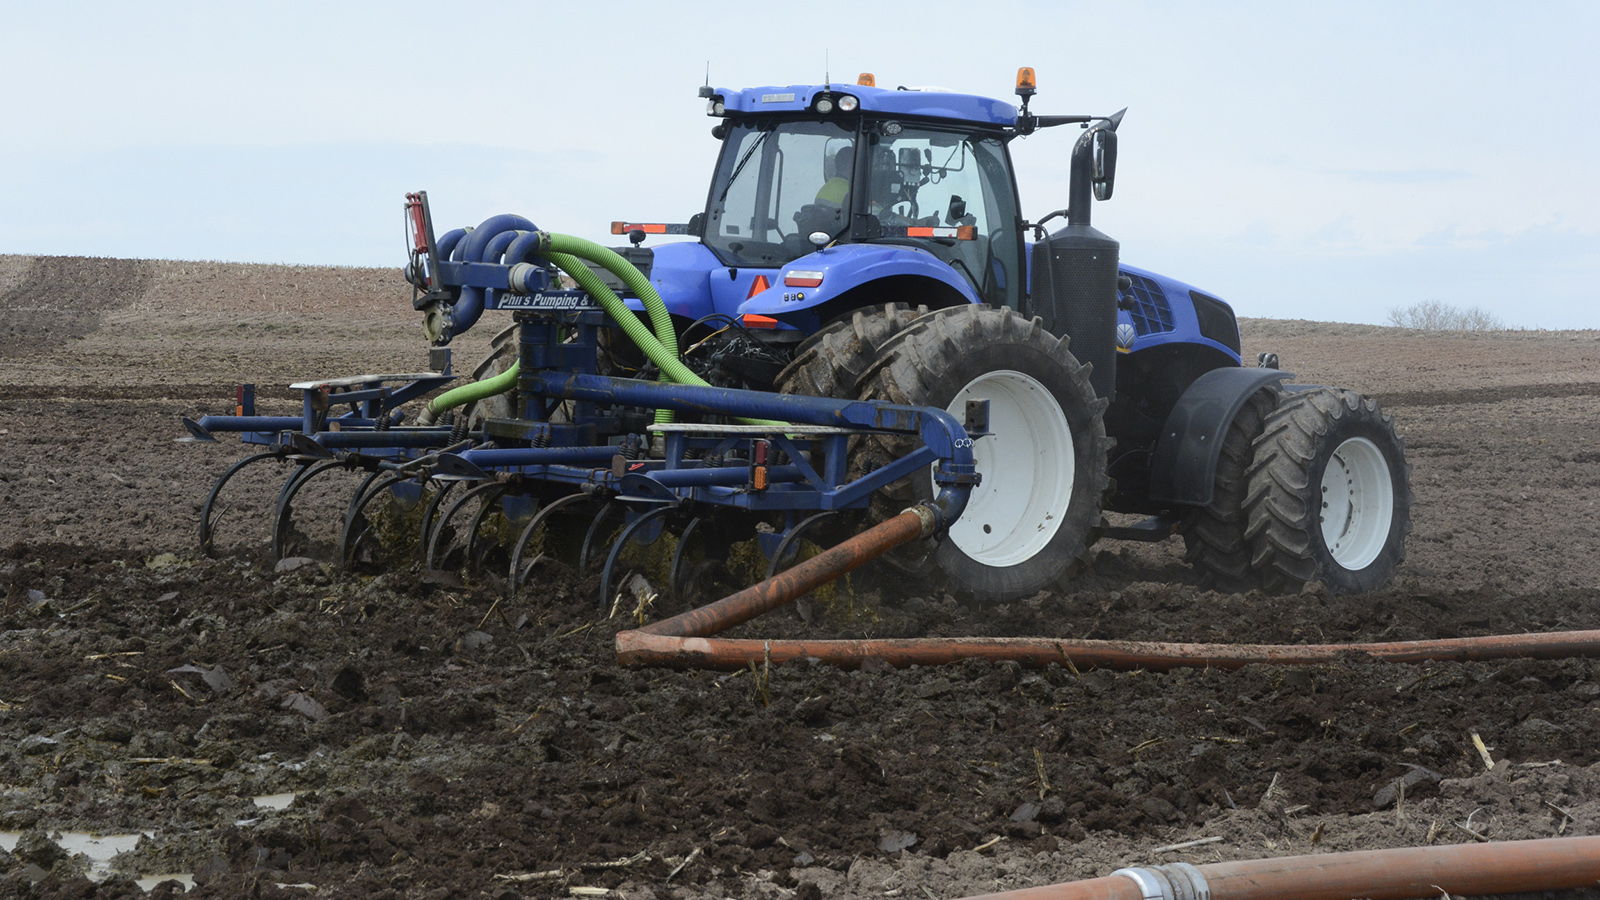 A tractor spreads manure on an open farm field.